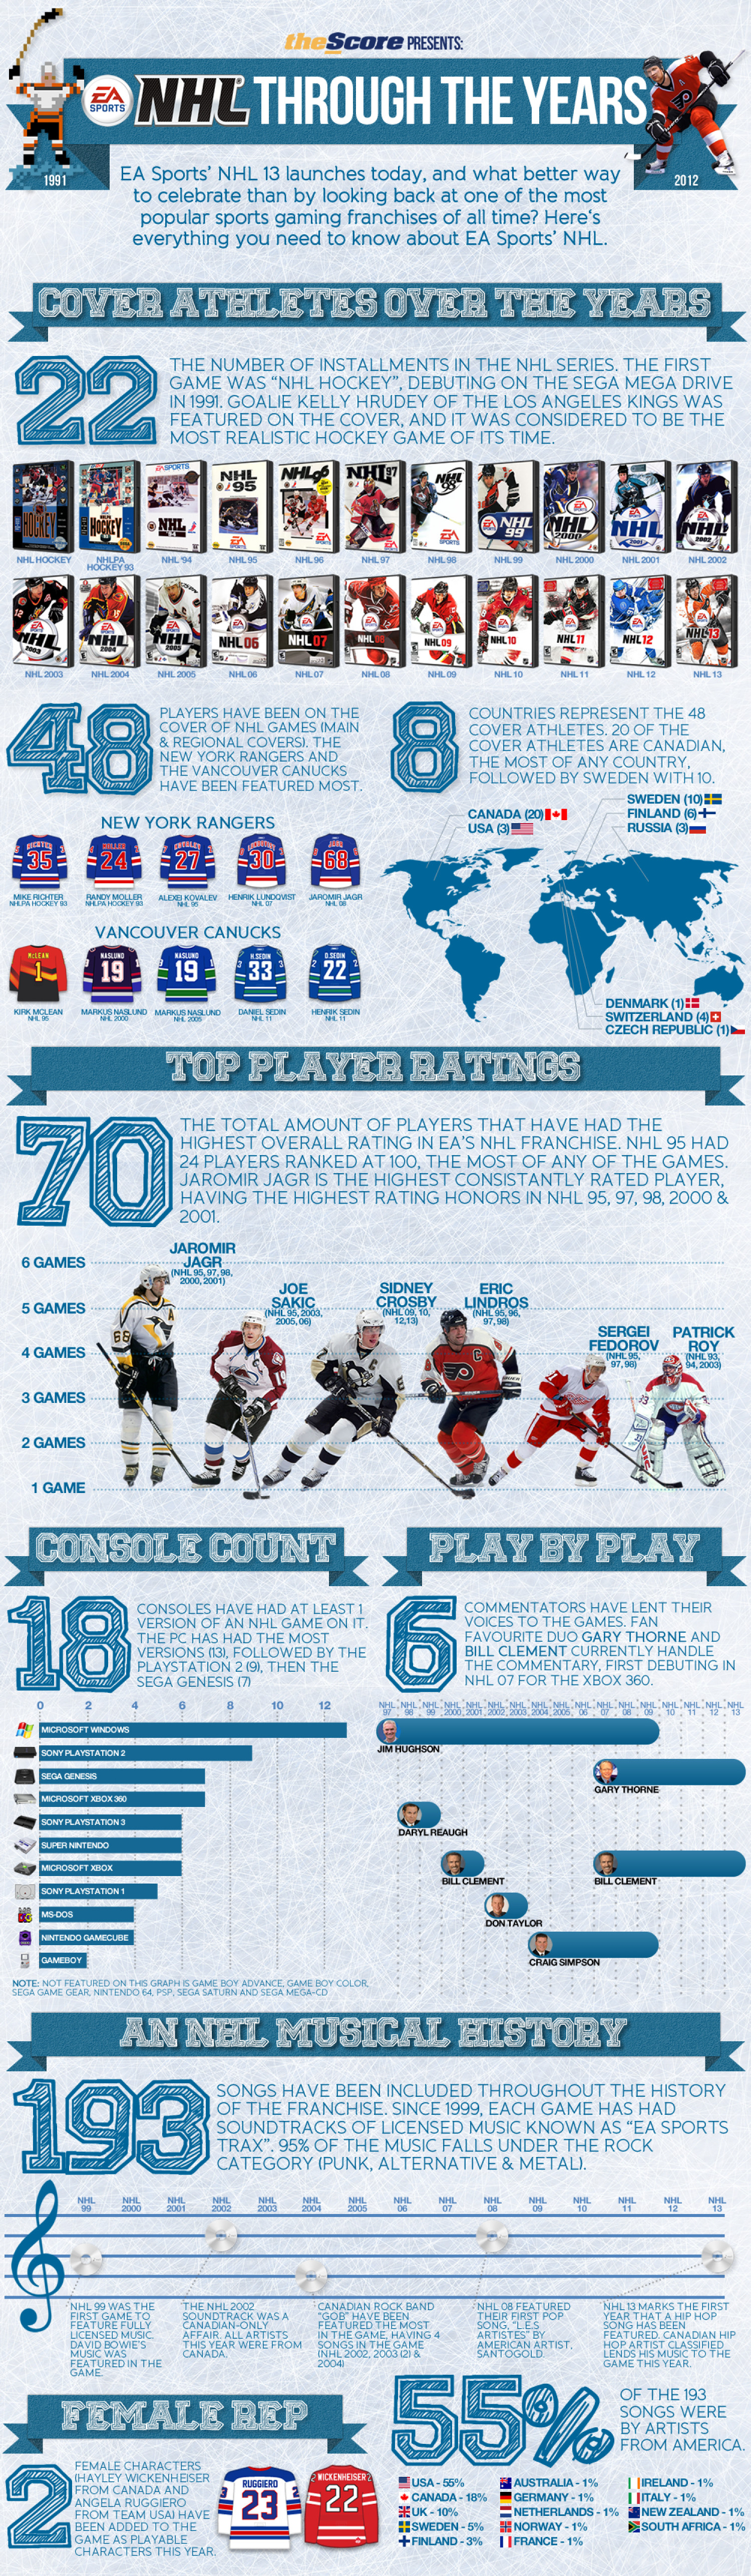 theScore presents EA Sports NHL Through the Years Infographic